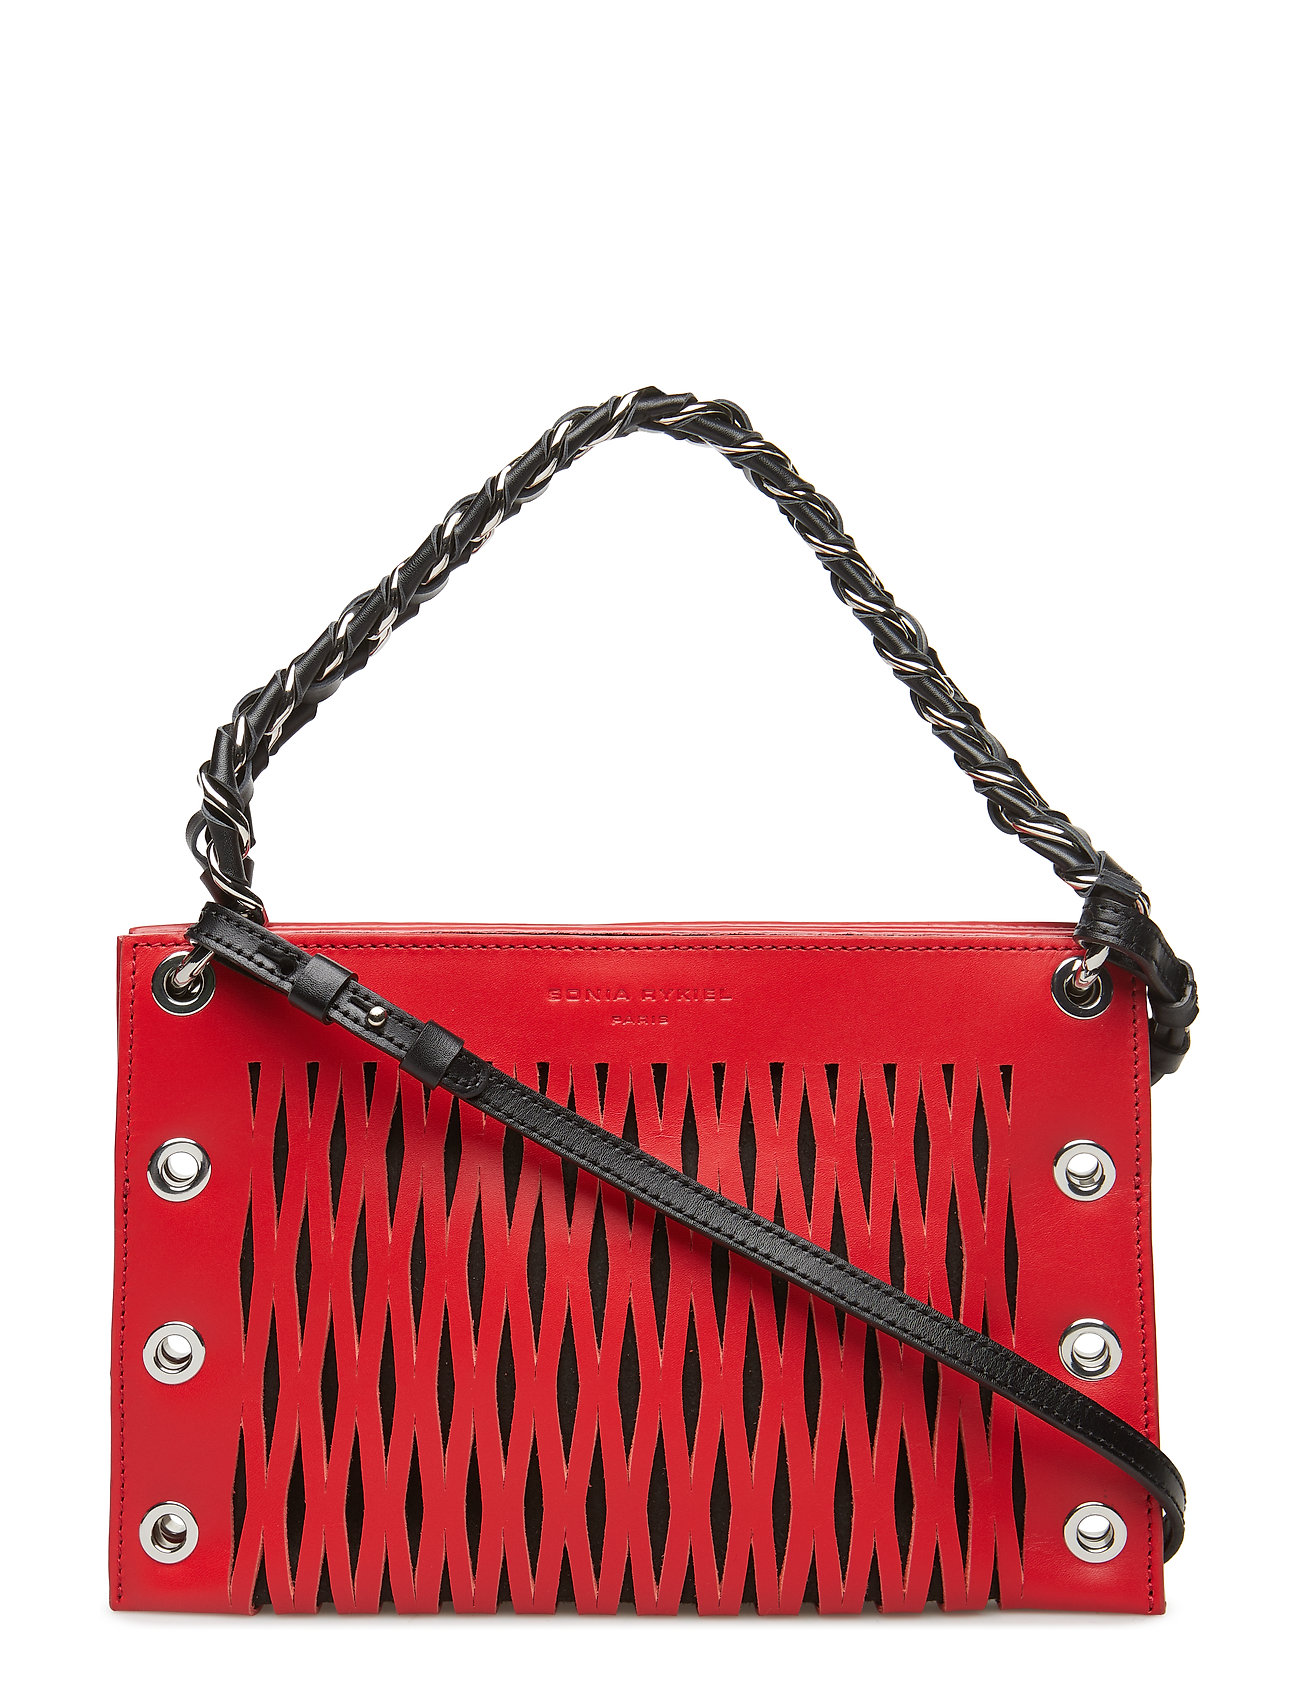 Image of Double Pouch Bags Small Shoulder Bags - Crossbody Bags Rød Sonia Rykiel (3042878369)